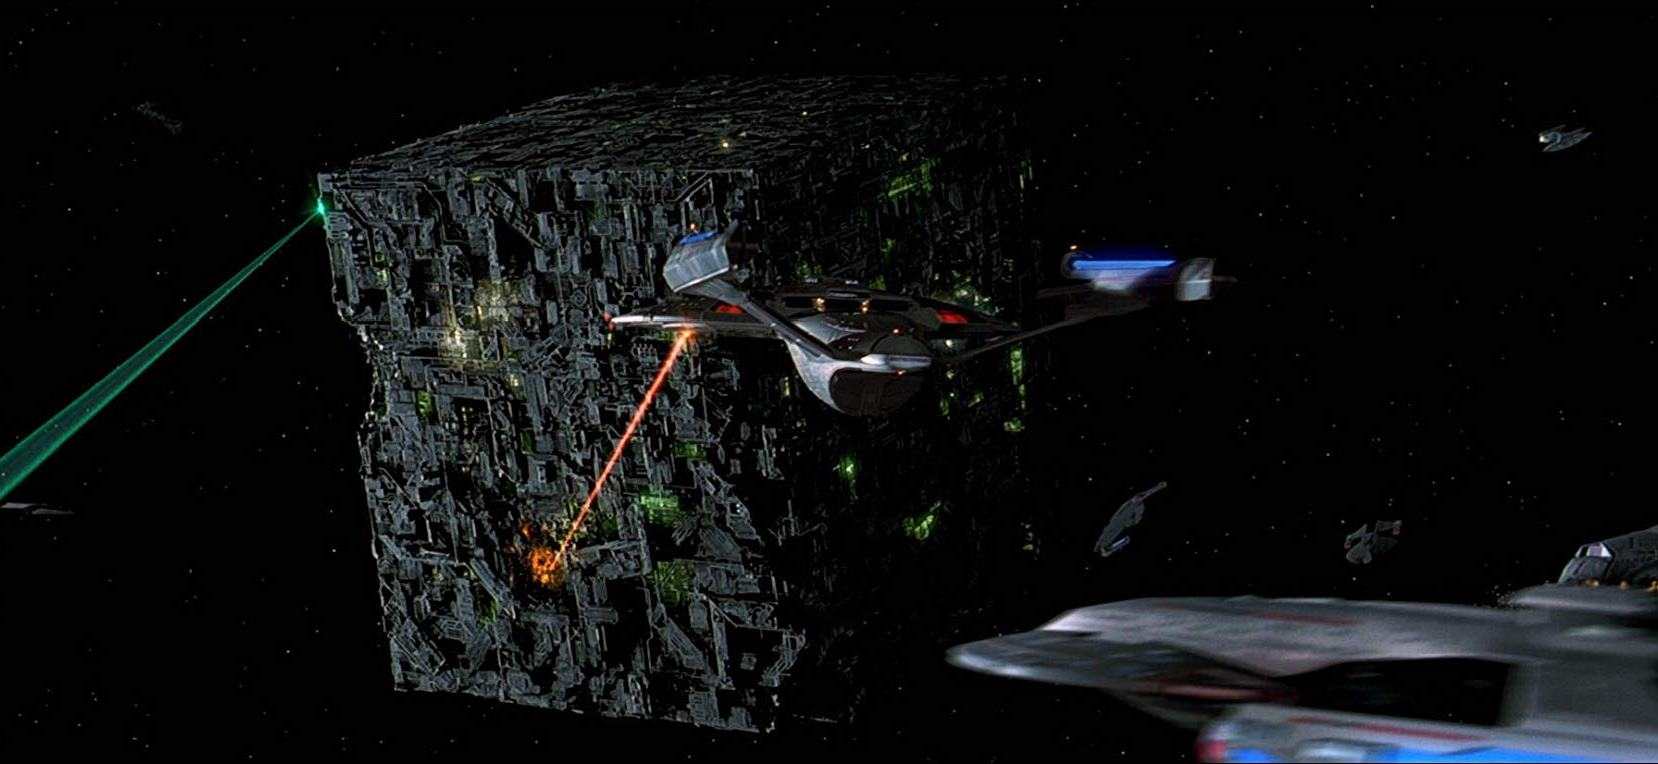 The Enterprise versus the Borg cube in Star Trek: First Contact (1996)